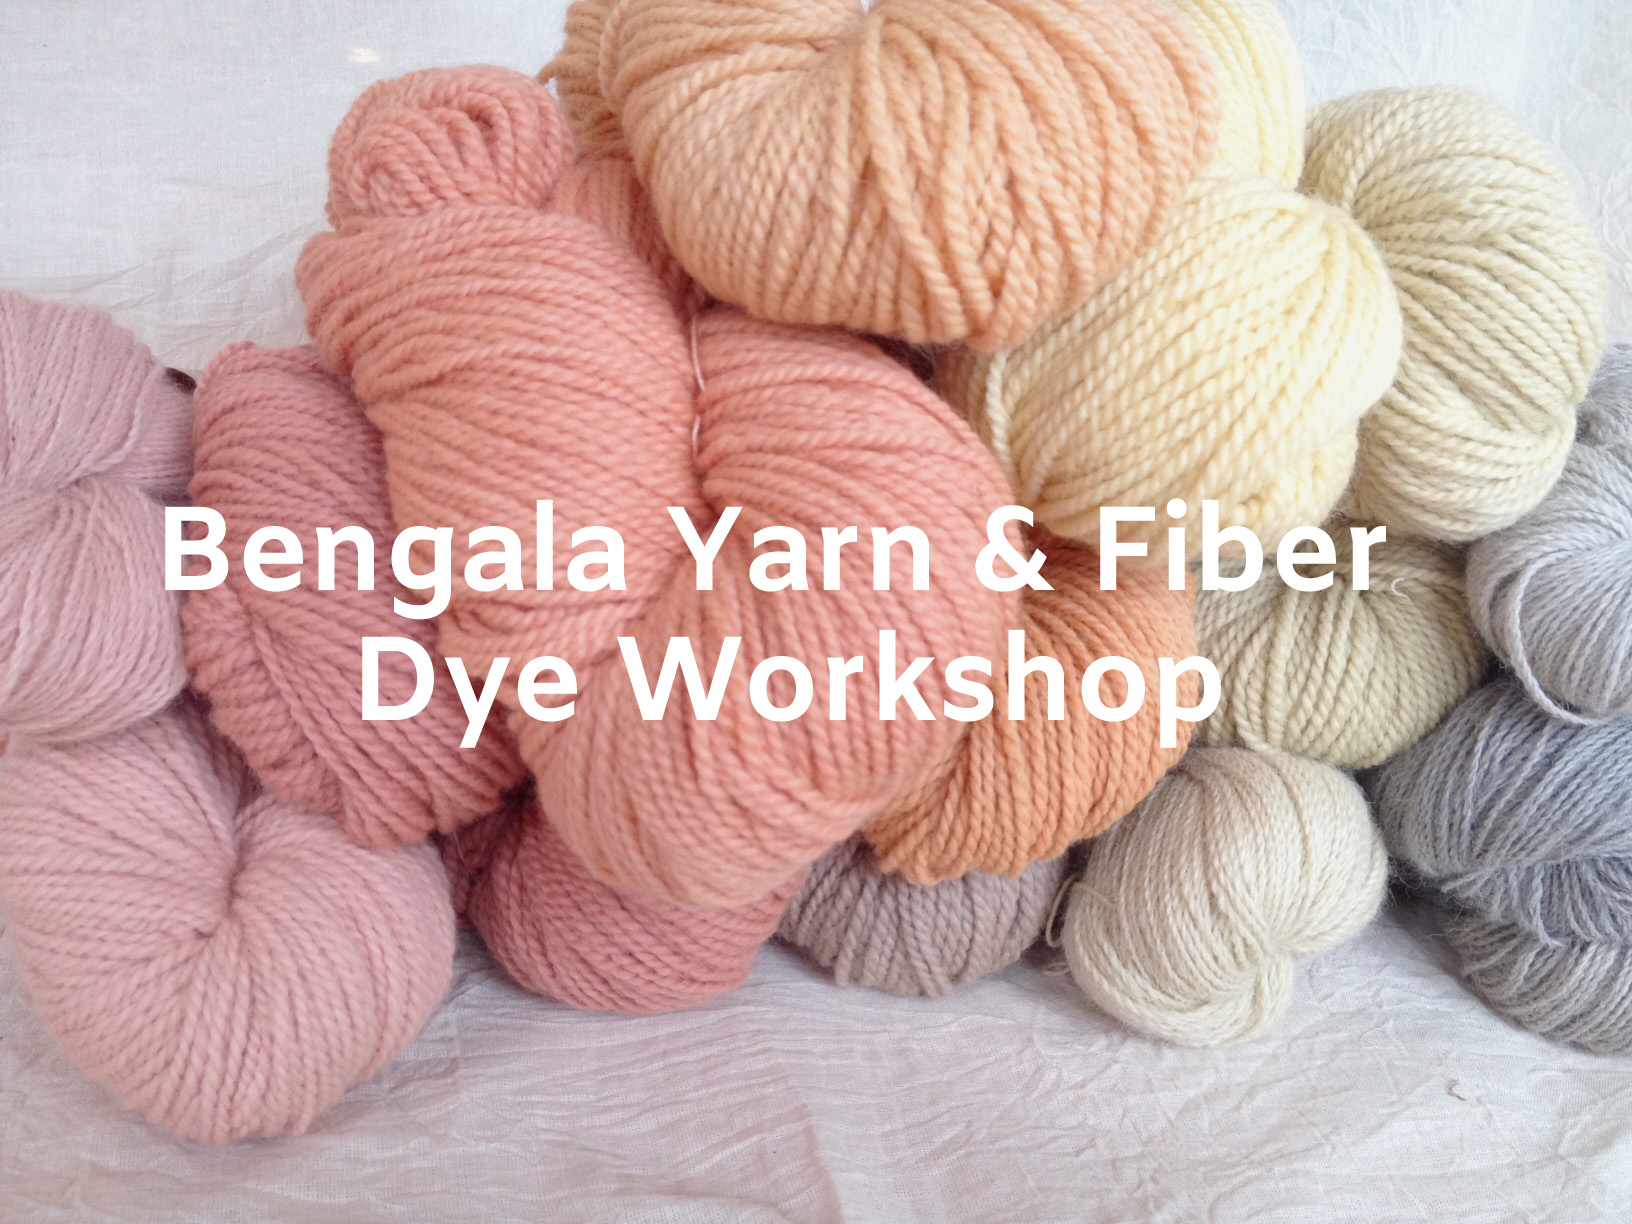 bengala yarn dye workshop copy.jpg